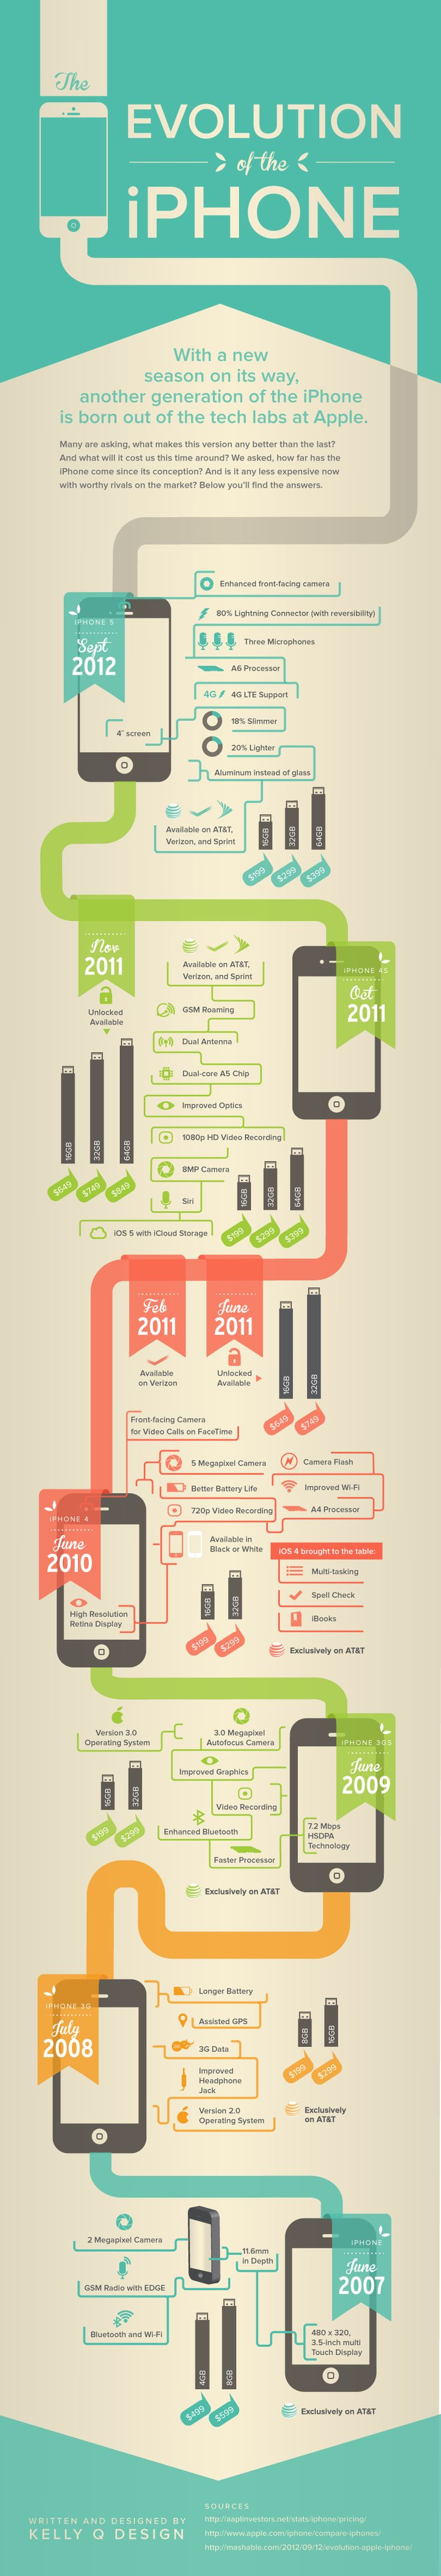 Unique Infographic Design, Evolution Of The iPhone #Infographic #Design (http://www.pinterest.com/aldenchong/)